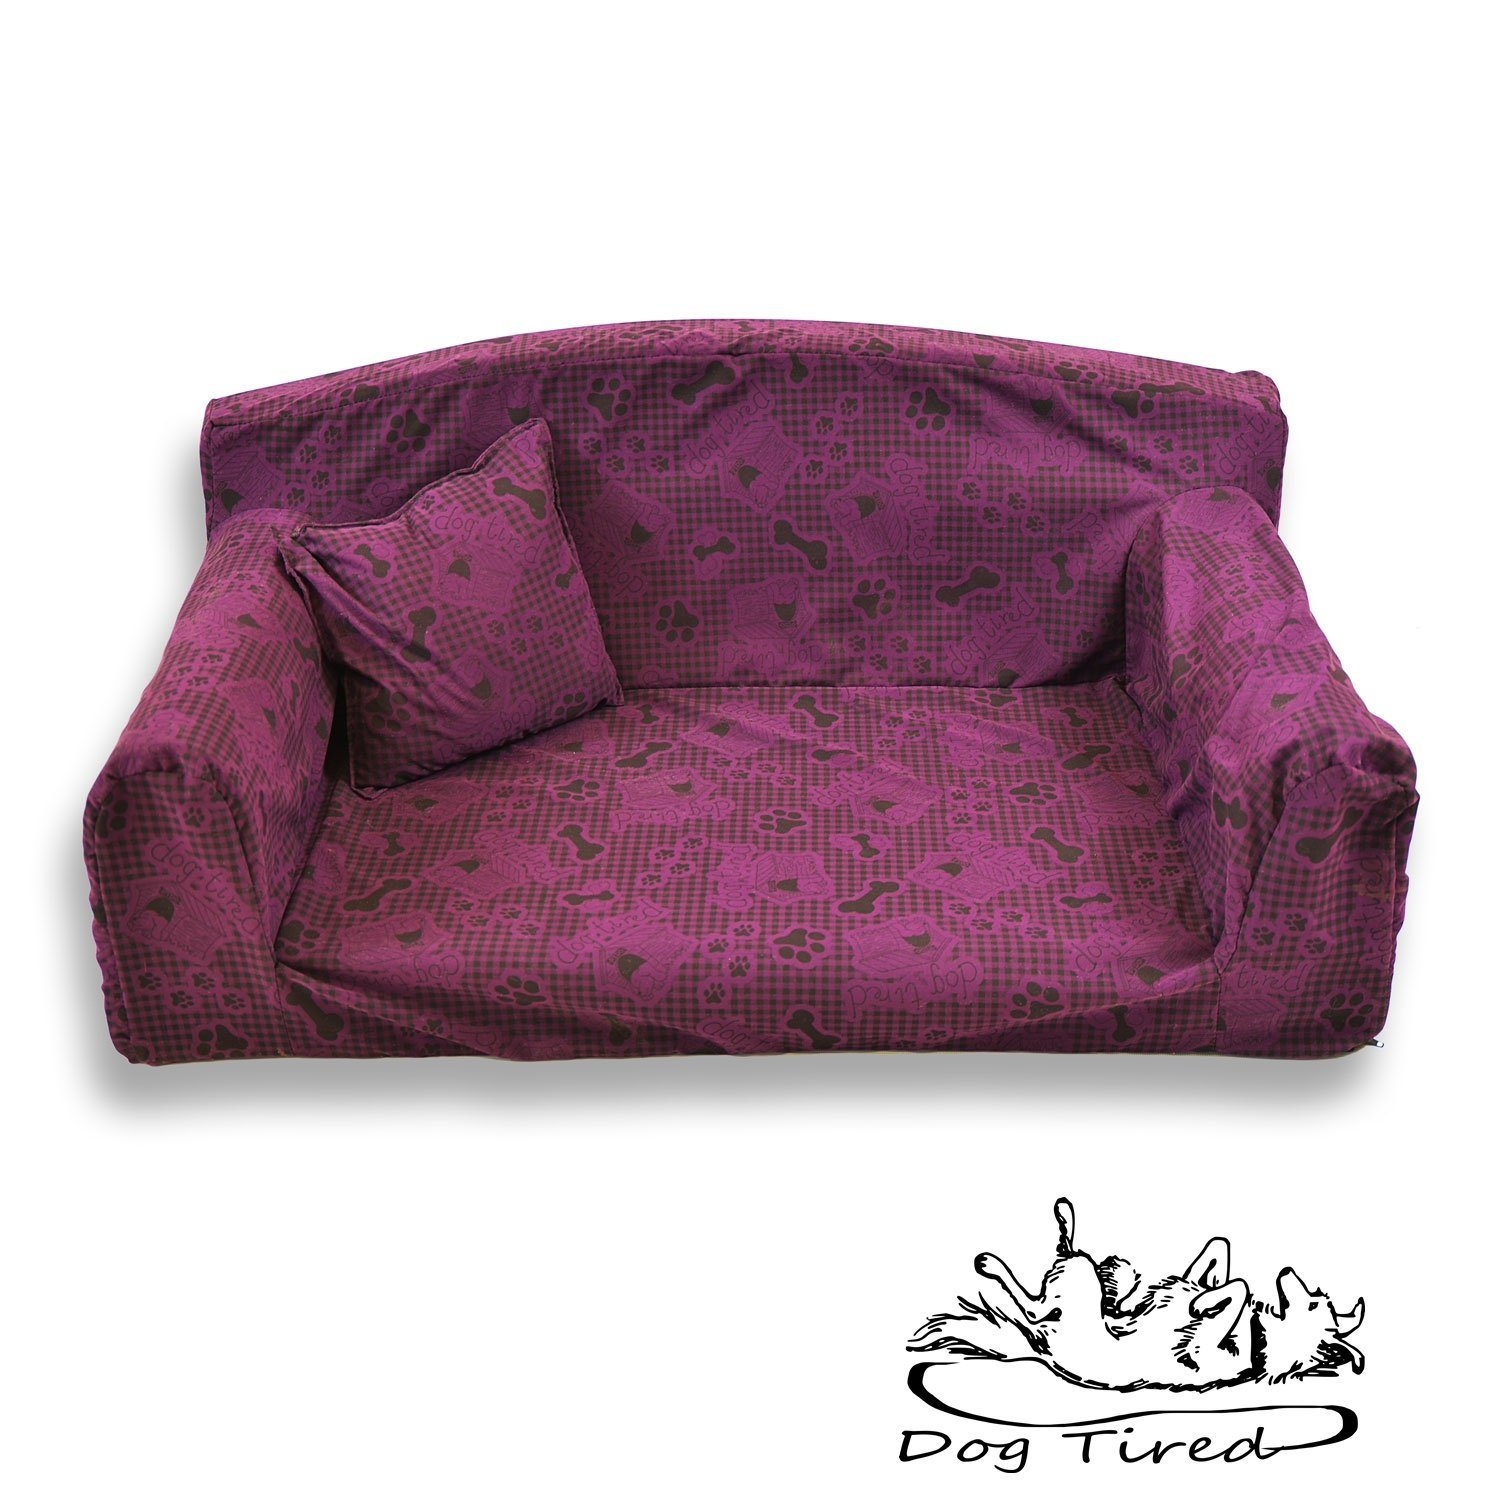 Dog Tired Purple – Pet Sofa. Trendy 3 sizes Dog bed. Modern cover material. Made in UK (Large 96 x 64 x 34 cm) Pet Beds Direct